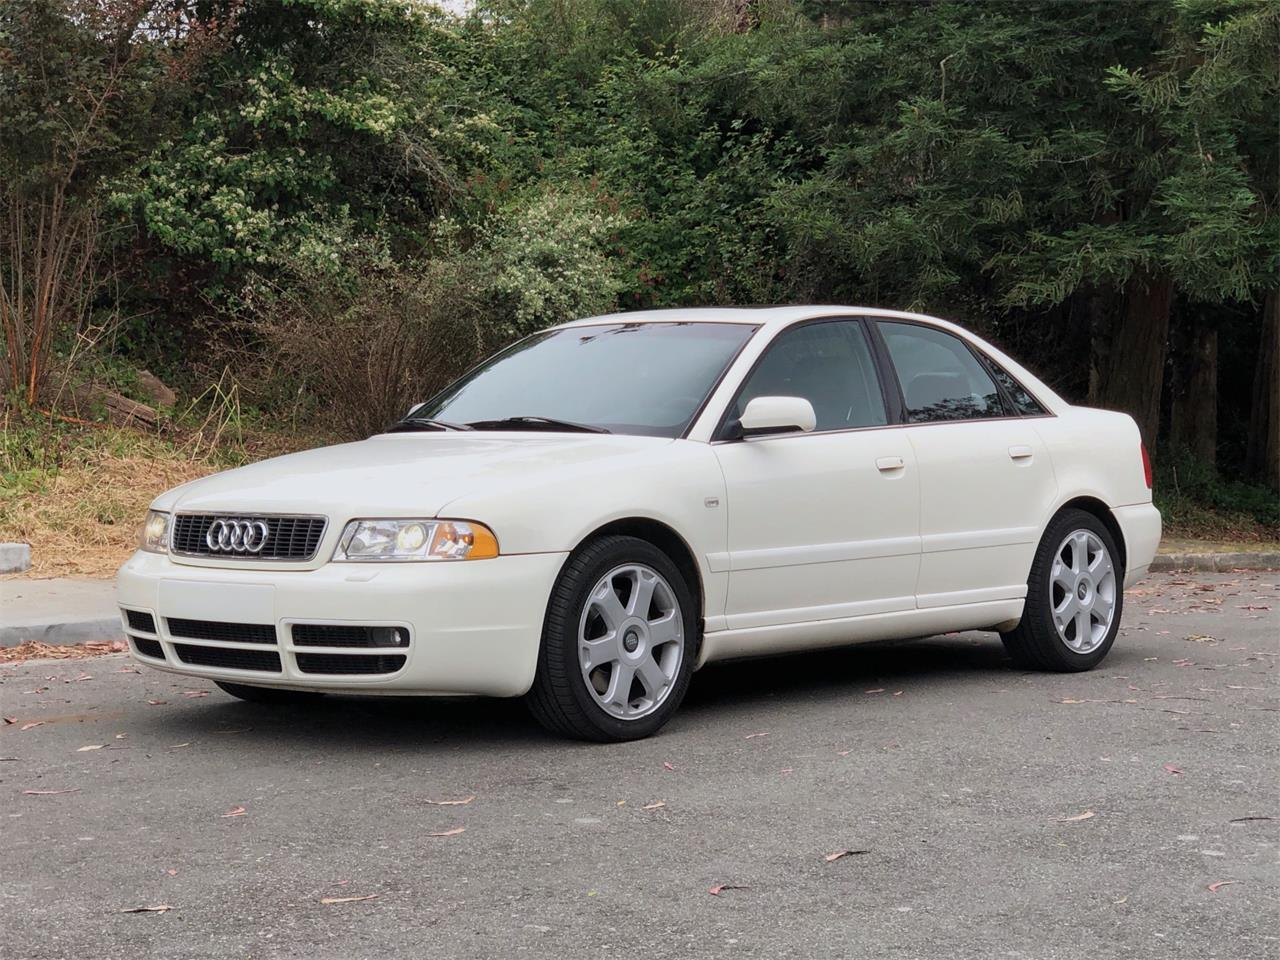 Large Picture of 2001 Audi S4 Auction Vehicle - QDIC